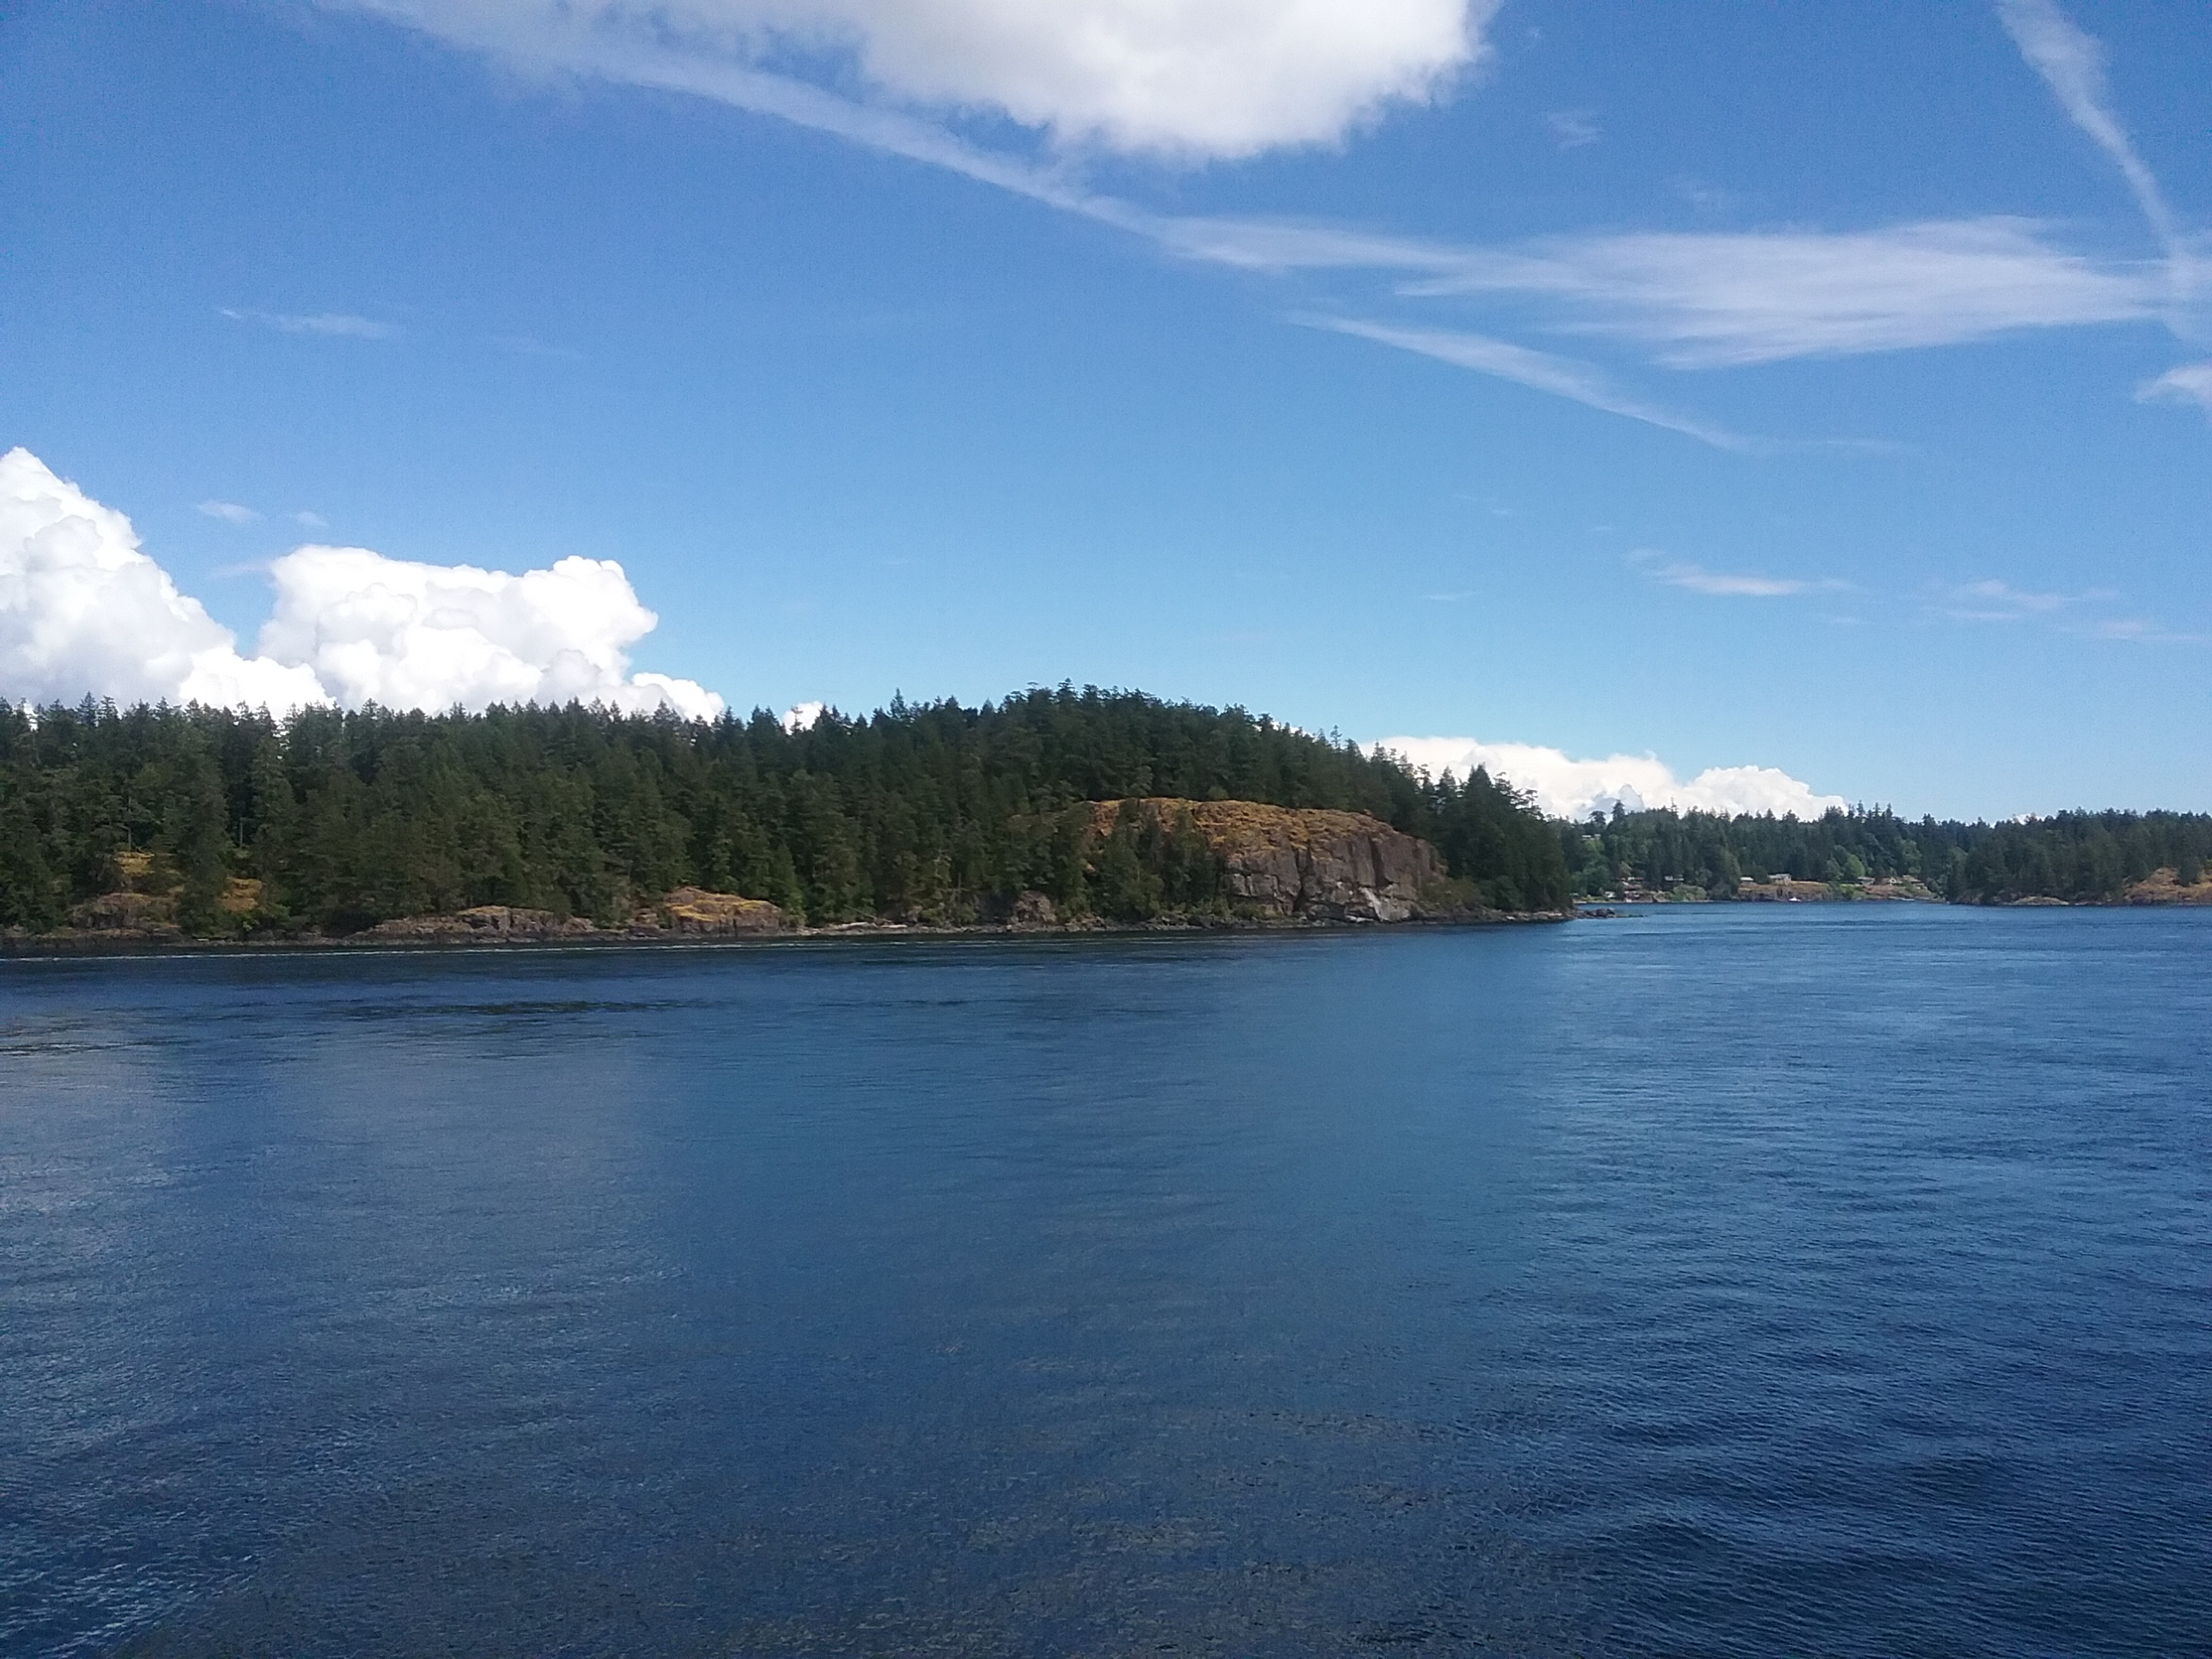 Inside Passage by Seymour Narrows